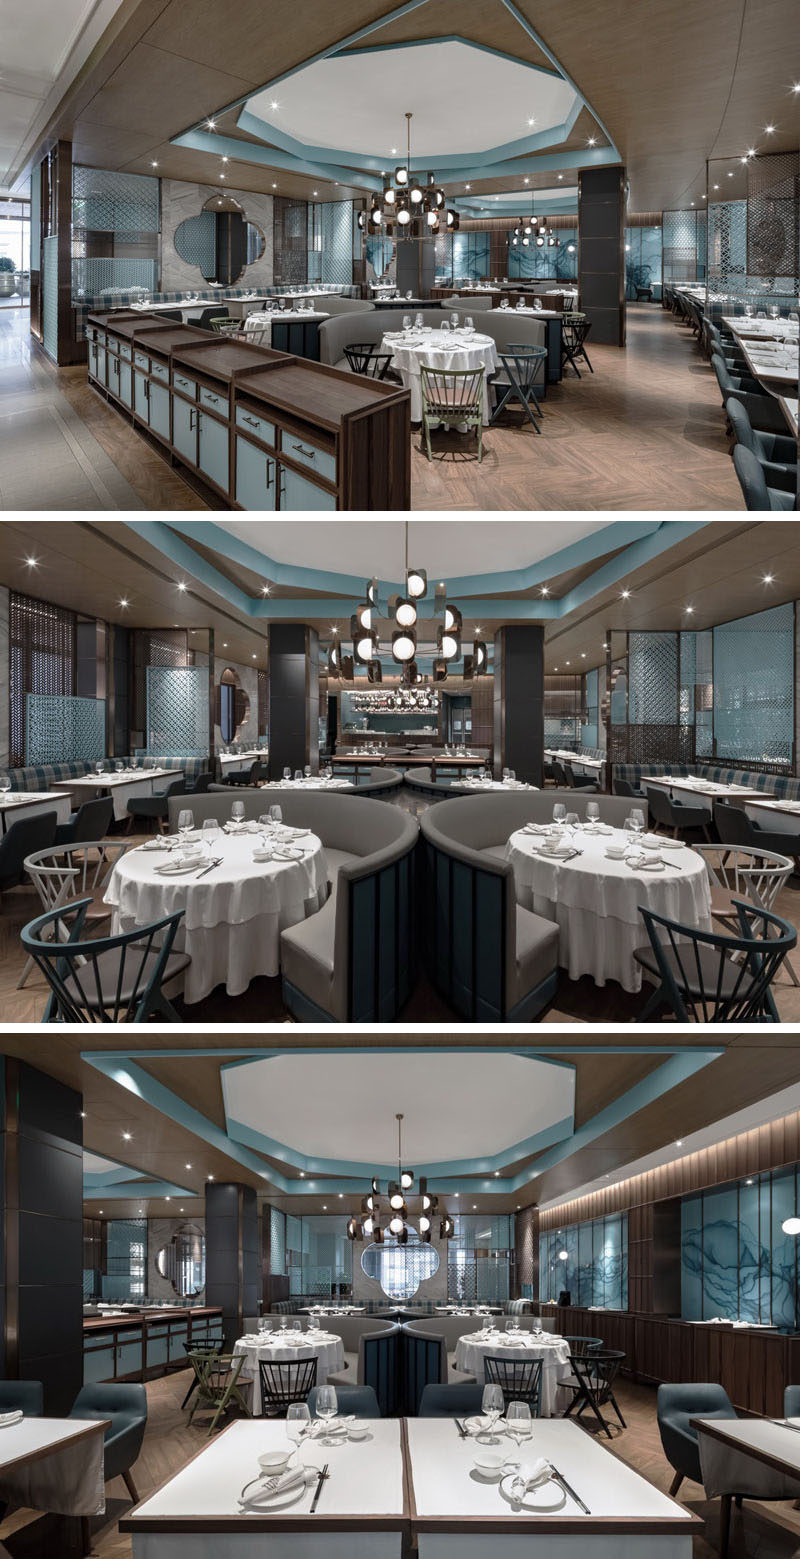 In the main dining area of this modern restaurant, a decagon ceiling feature and chandelier are positioned above curved seating booths. #RestaurantInterior #ModernRestaurant